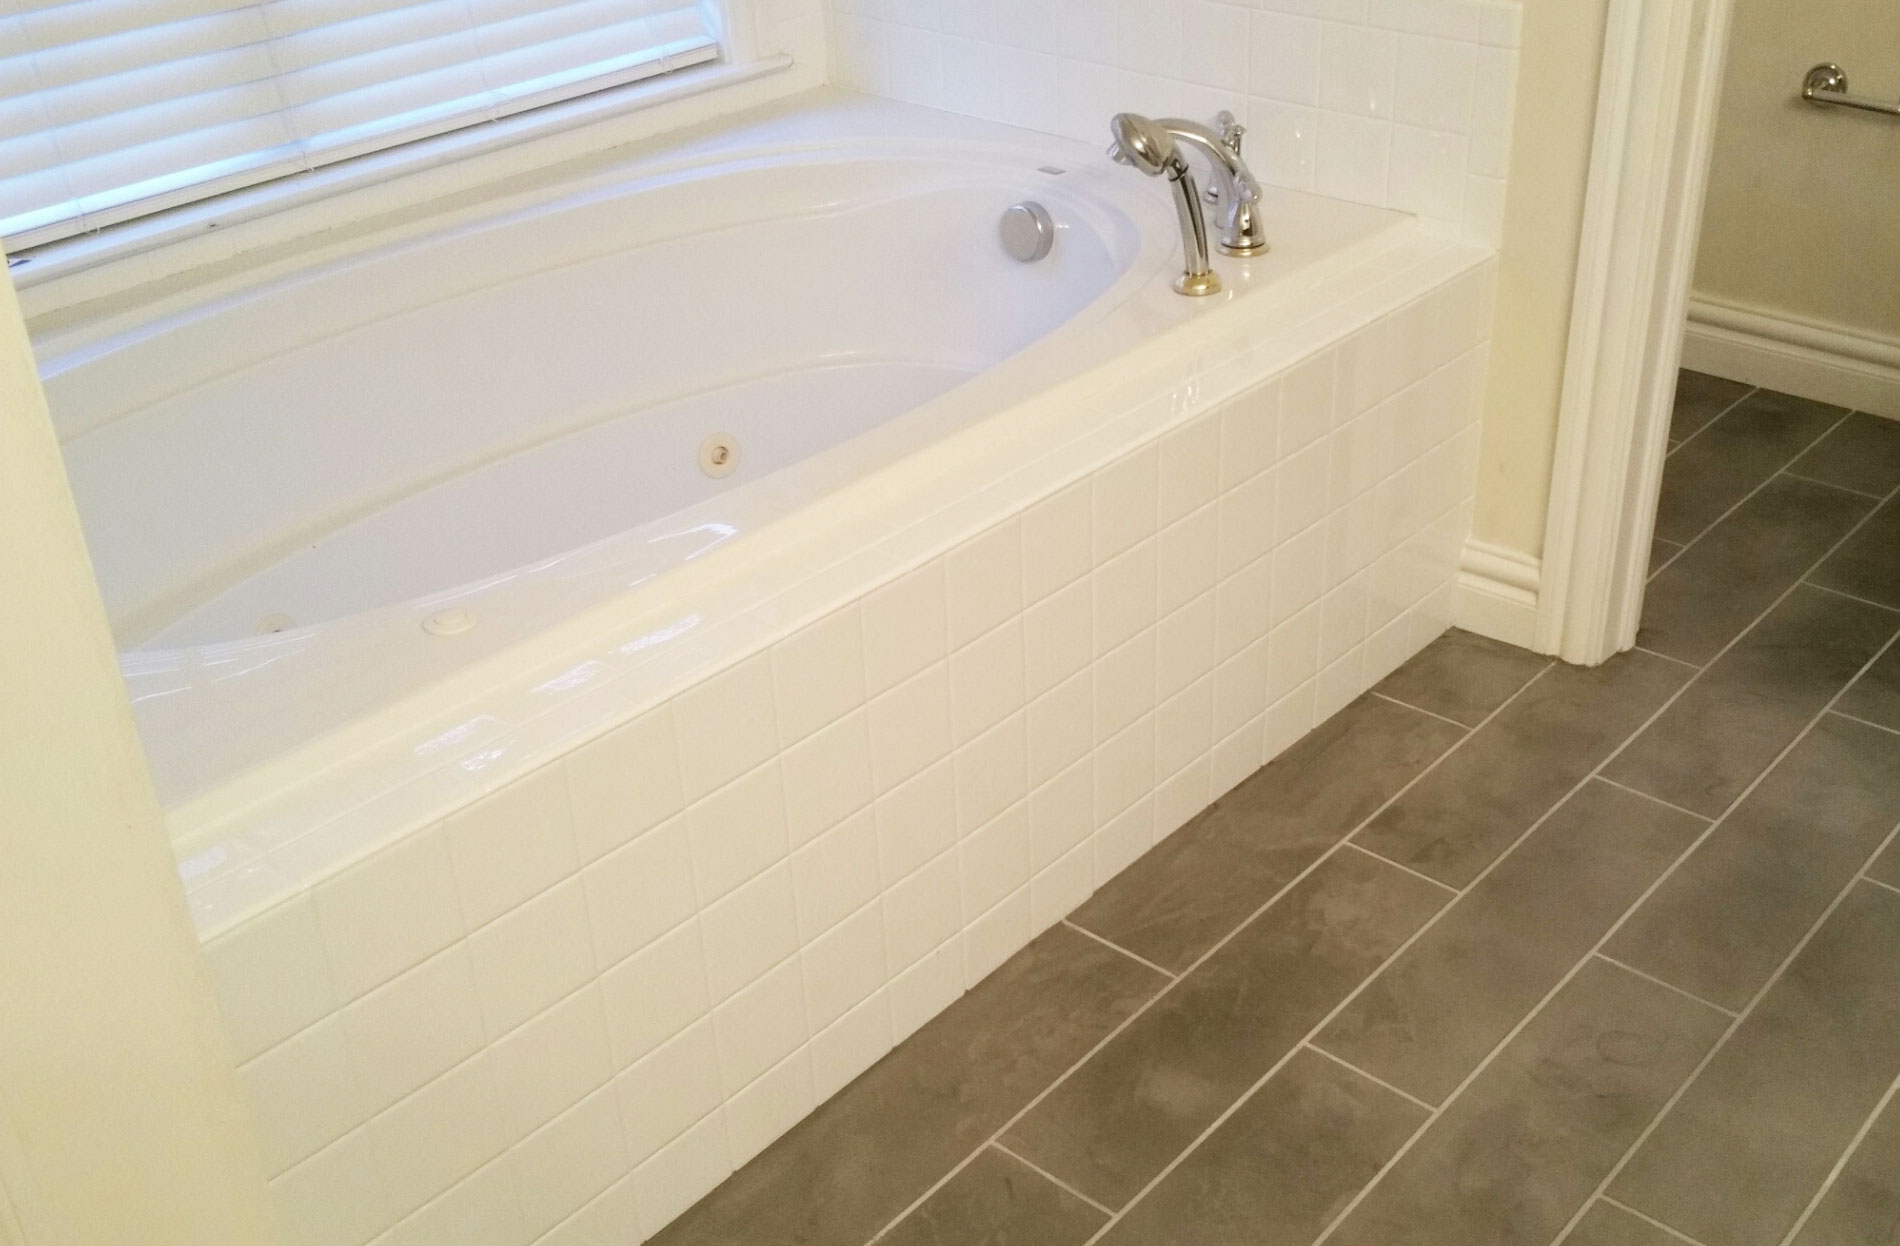 Tile Wall Refinishing in Chico and Redding, CA and surrounding Areas